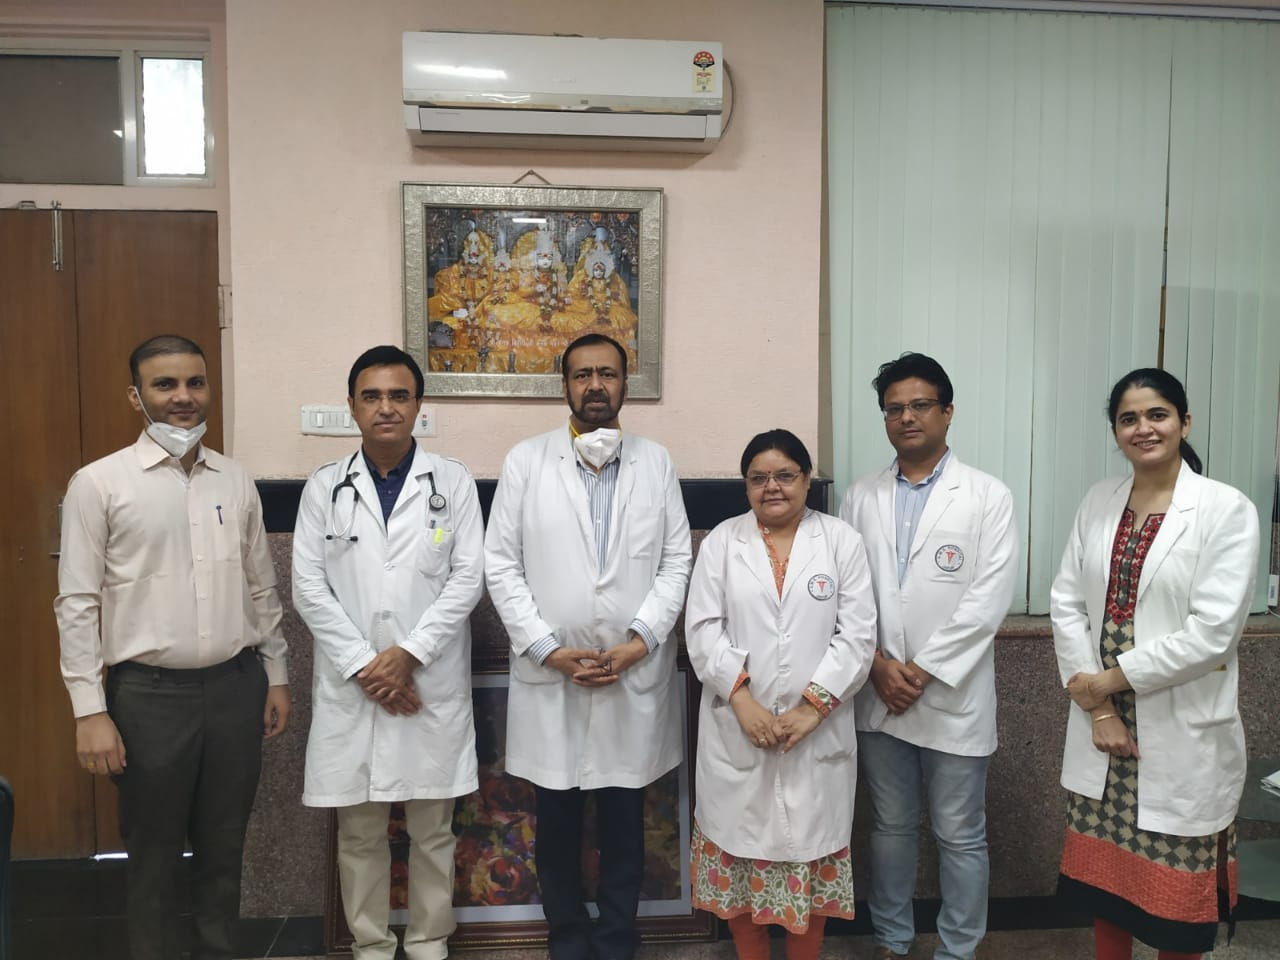 Treating Corona: 3 successful plasma therapies shows ray of hope as Rajasthan Reaches 79% recovery rate